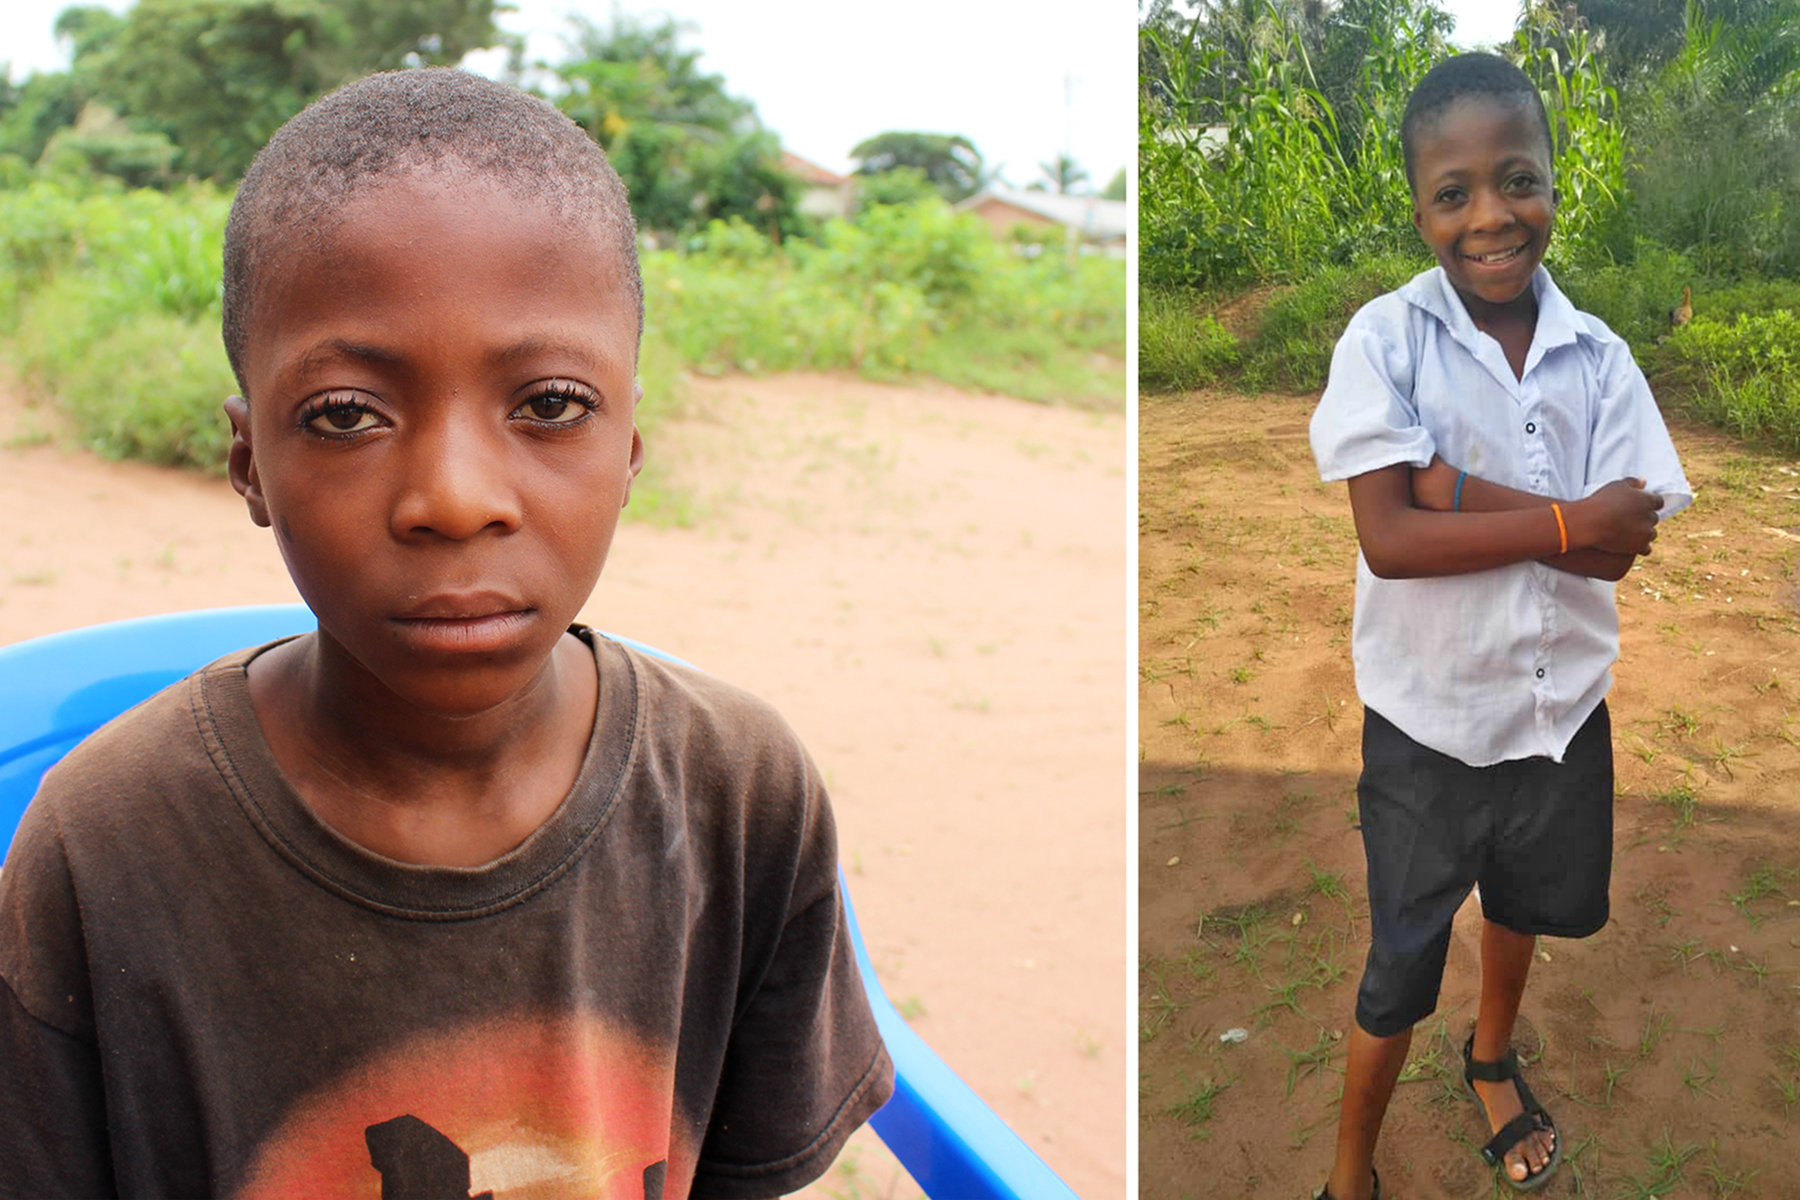 """I am alone here,"" said Kanku Ngalamulume eight months ago. After receiving regular food, school supplies and being taken in as part of a family, a smile has returned to his face. MCC photos/Mulanda Juma and Matthieu Abwe Luhanglea."